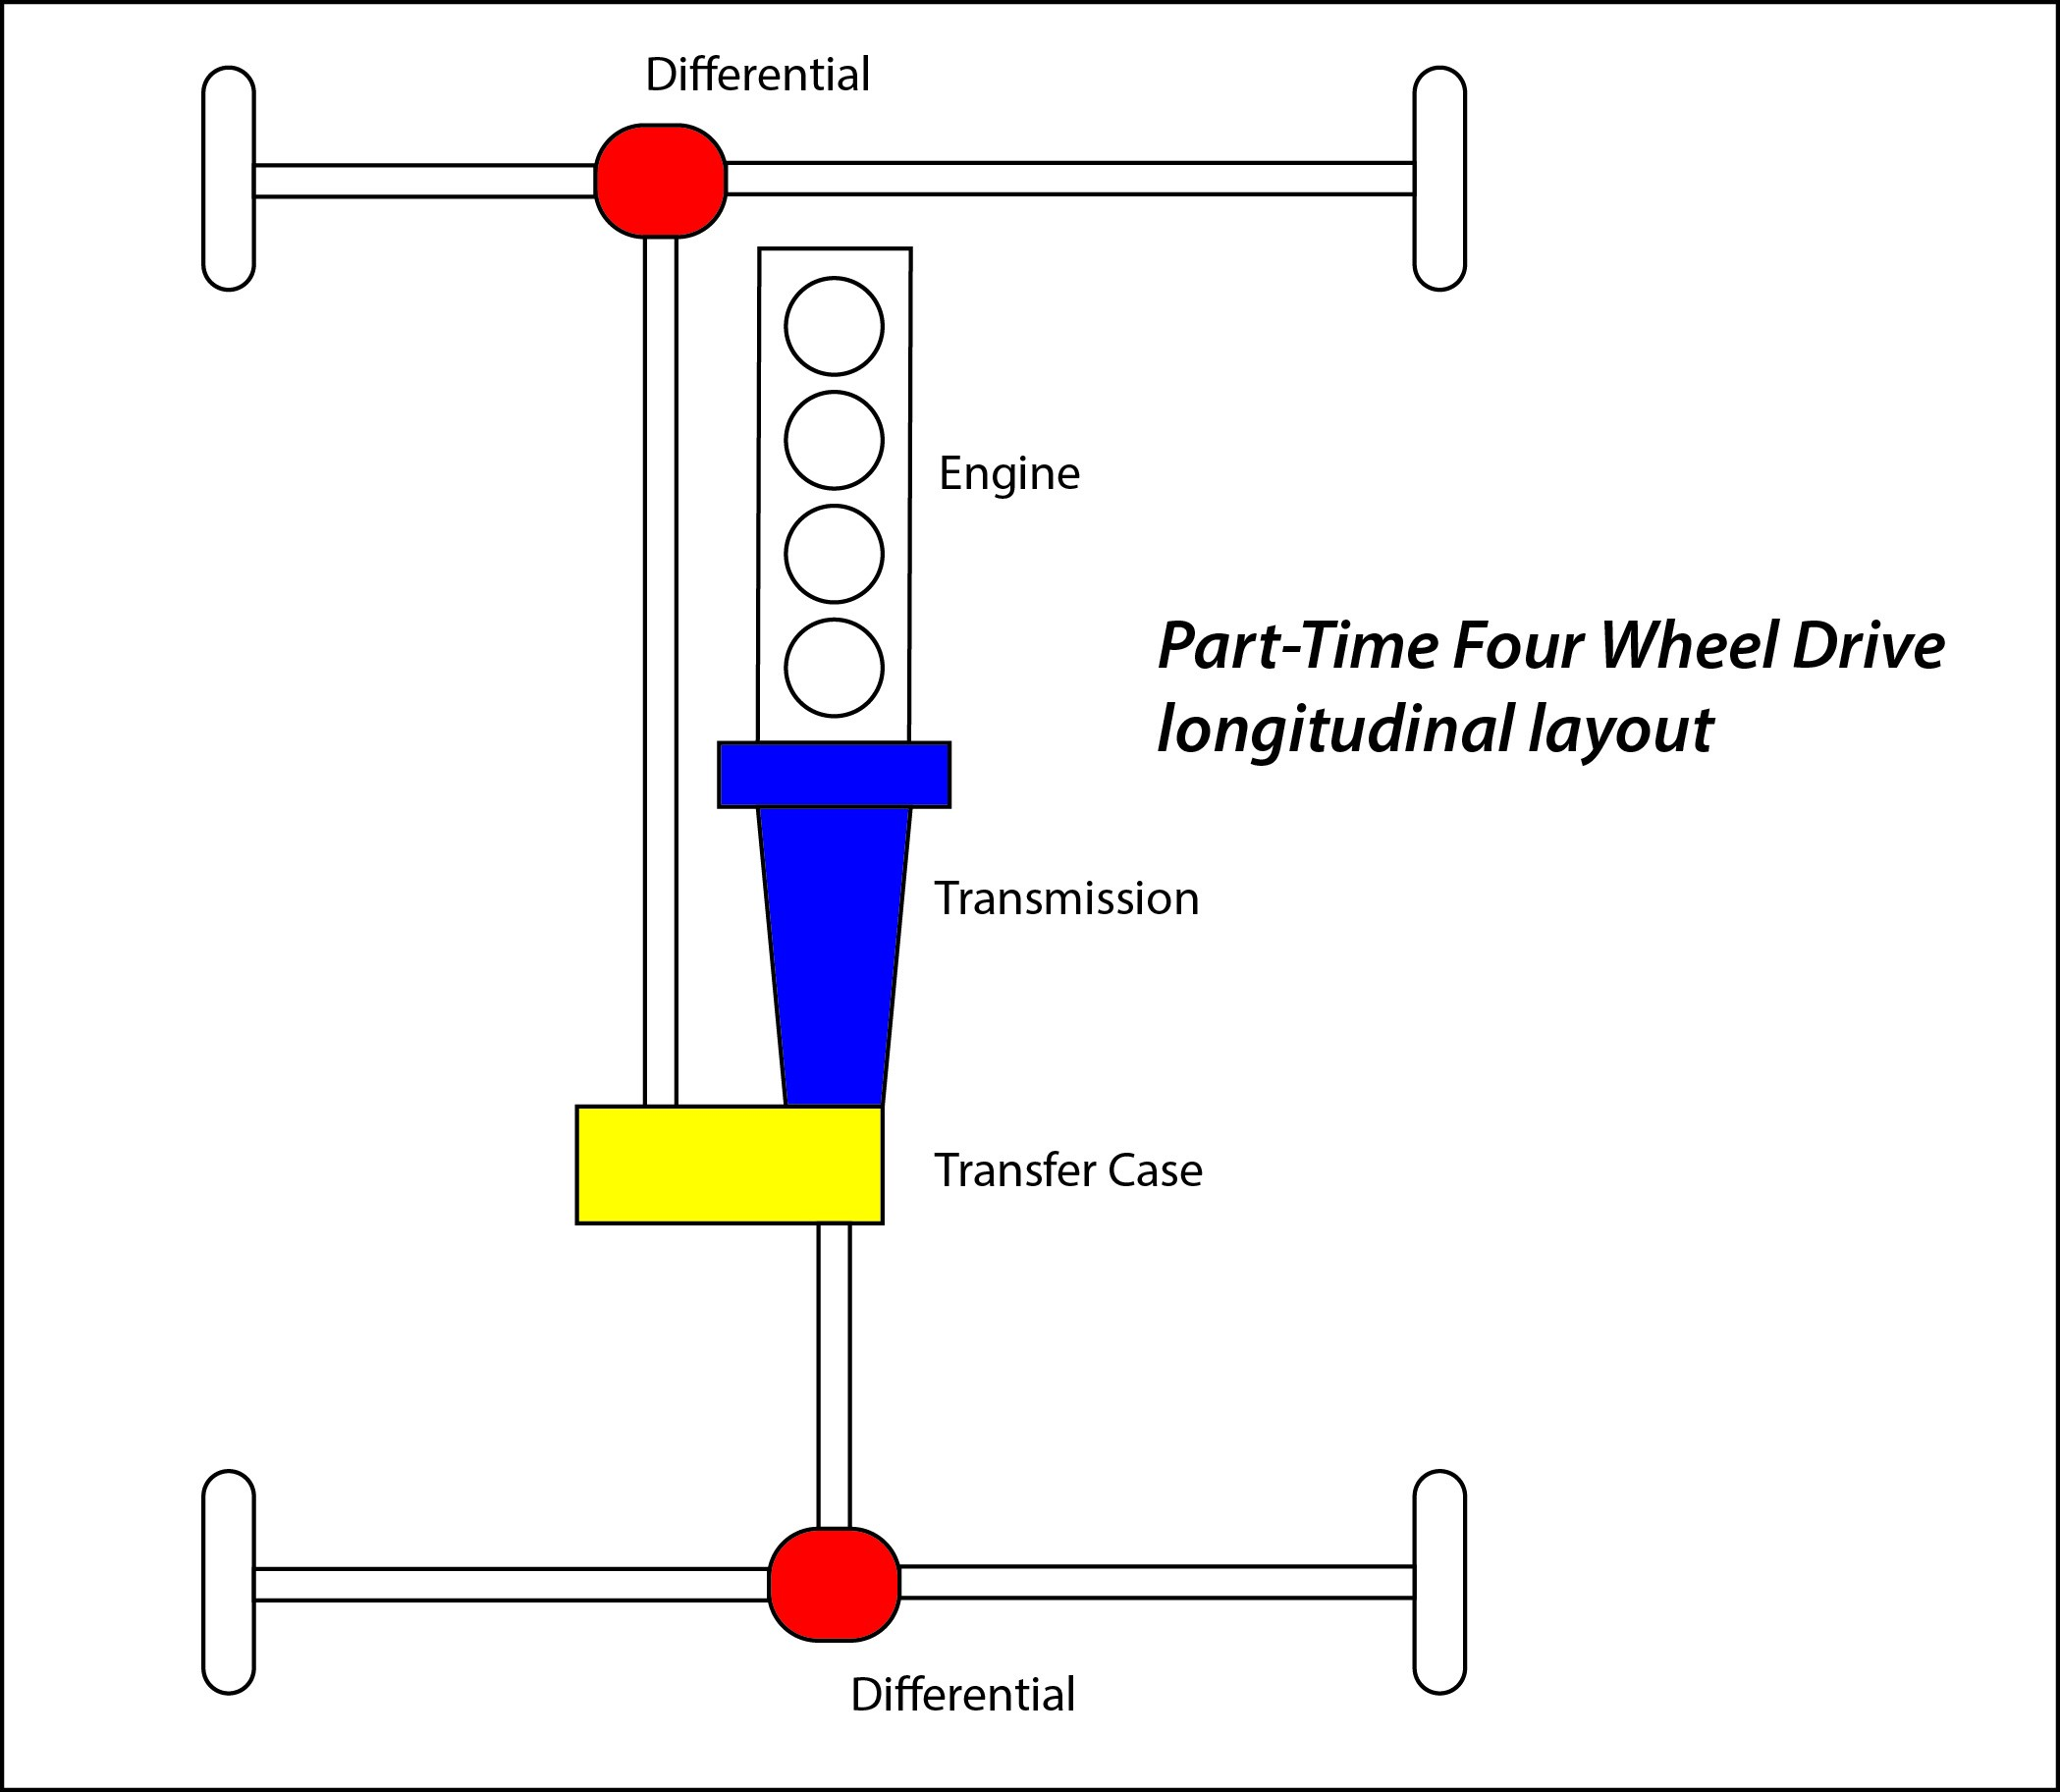 Drivetrain Diagram 4wd Drivetrain Diagram 4wd Alphabet soup 4×4 Vs 4wd Vs Awd where S the Of Drivetrain Diagram 4wd